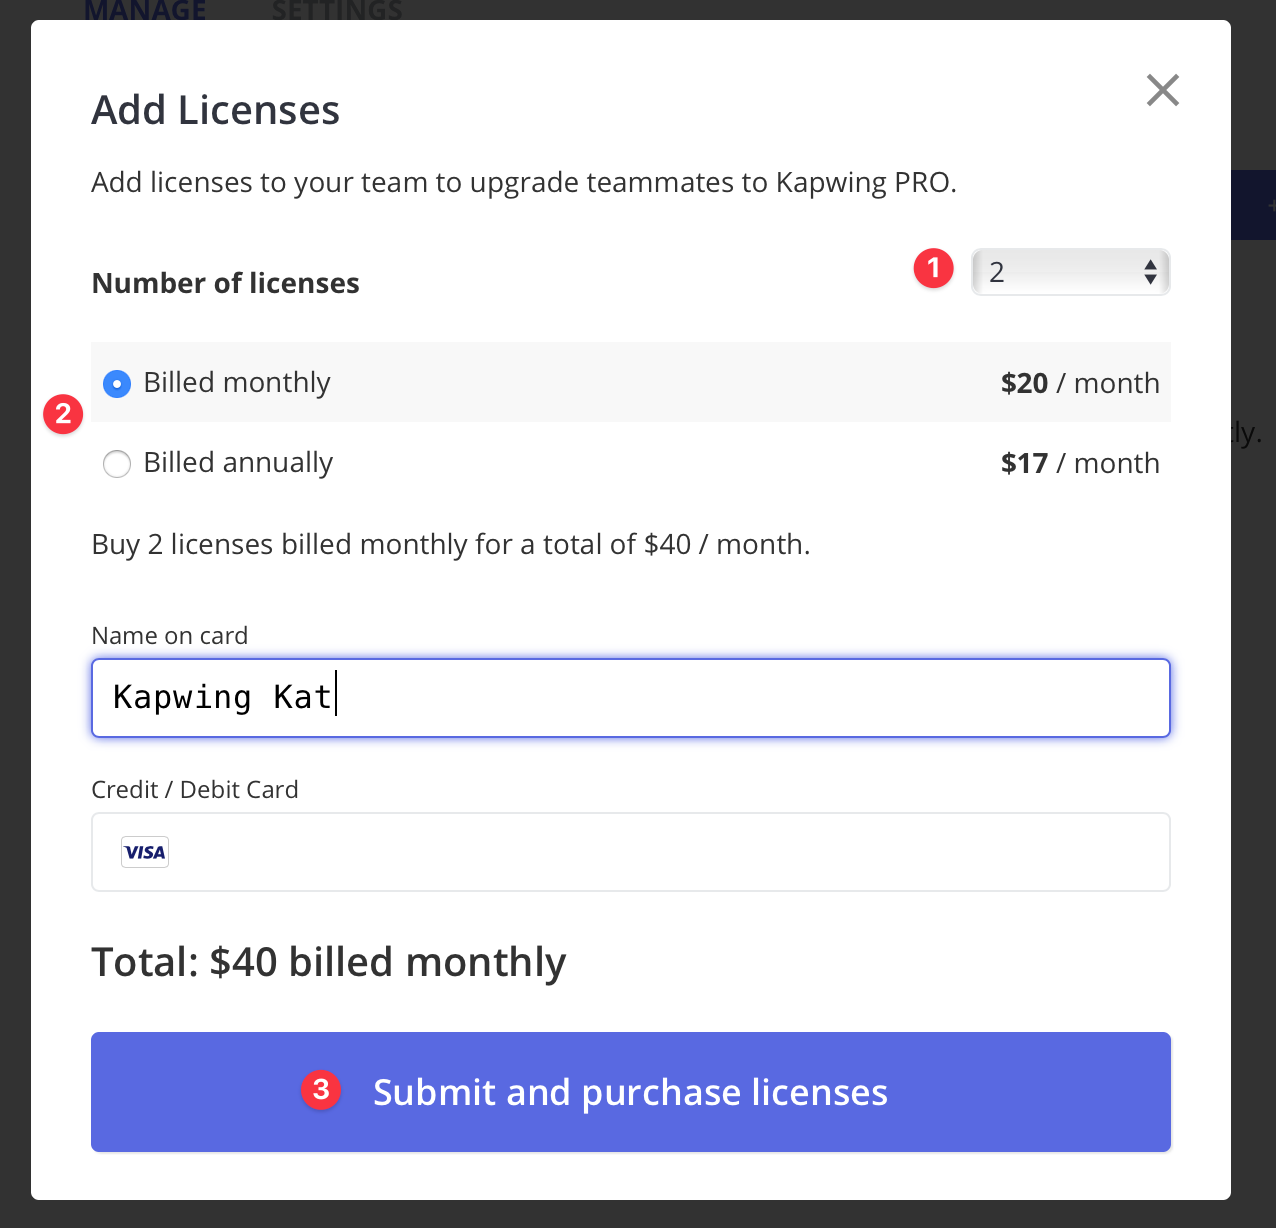 The add licenses modal allows you to purchase between 1-20 licenses and choose between monthly or annual billing.